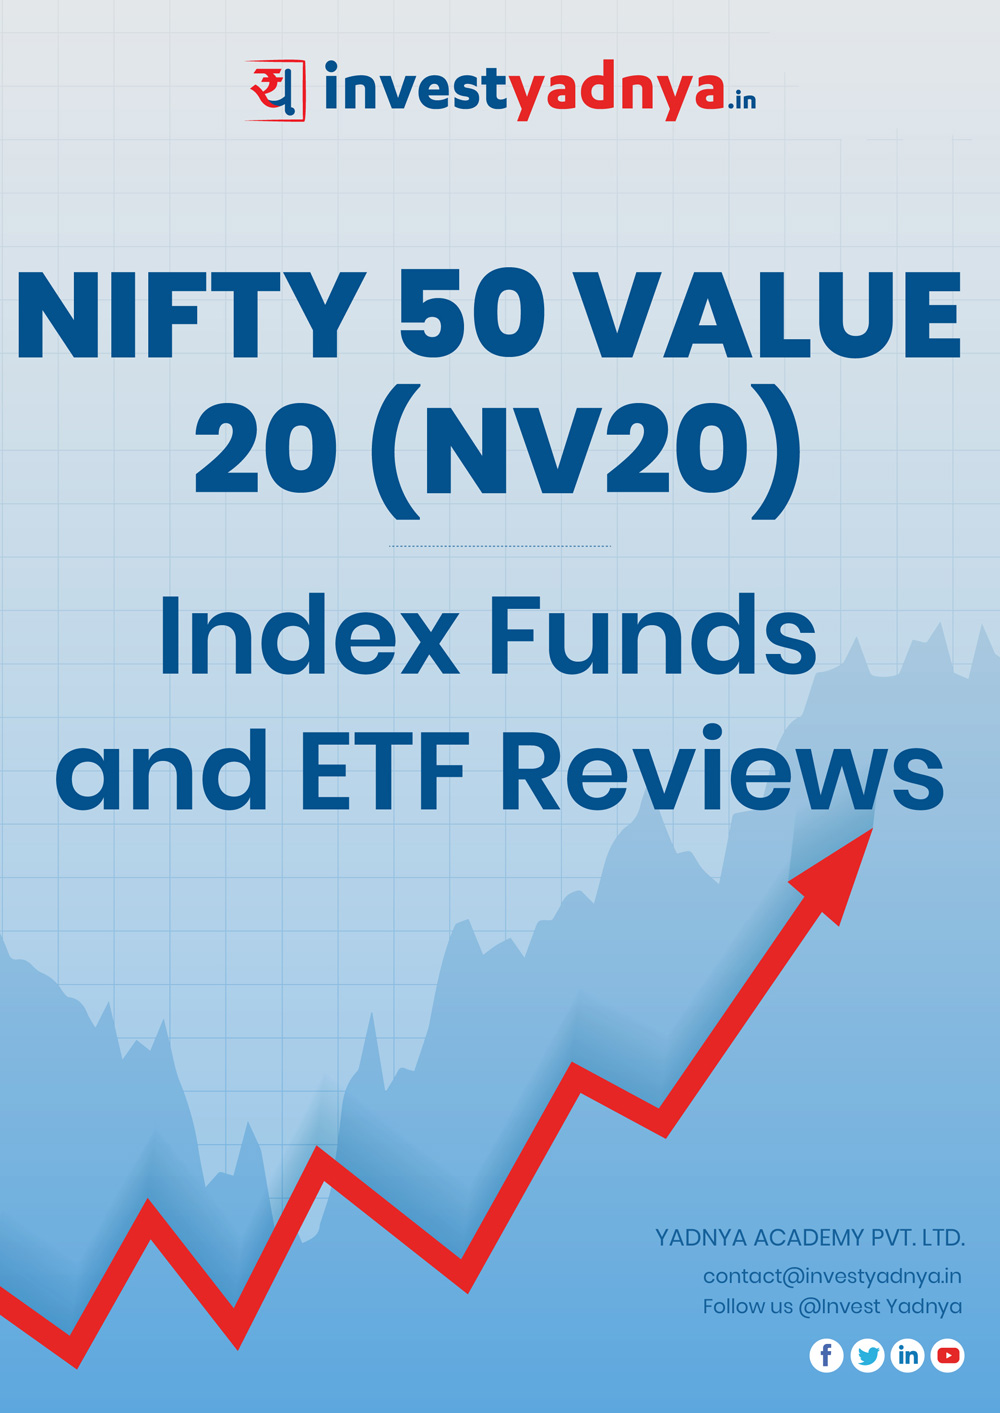 This e-book offers a detailed report on the Index funds & ETF reviews. It offers a detailed review analysis of Nifty index funds. ✔ Latest Research Reports ✔ Detailed Index Fund Analysis